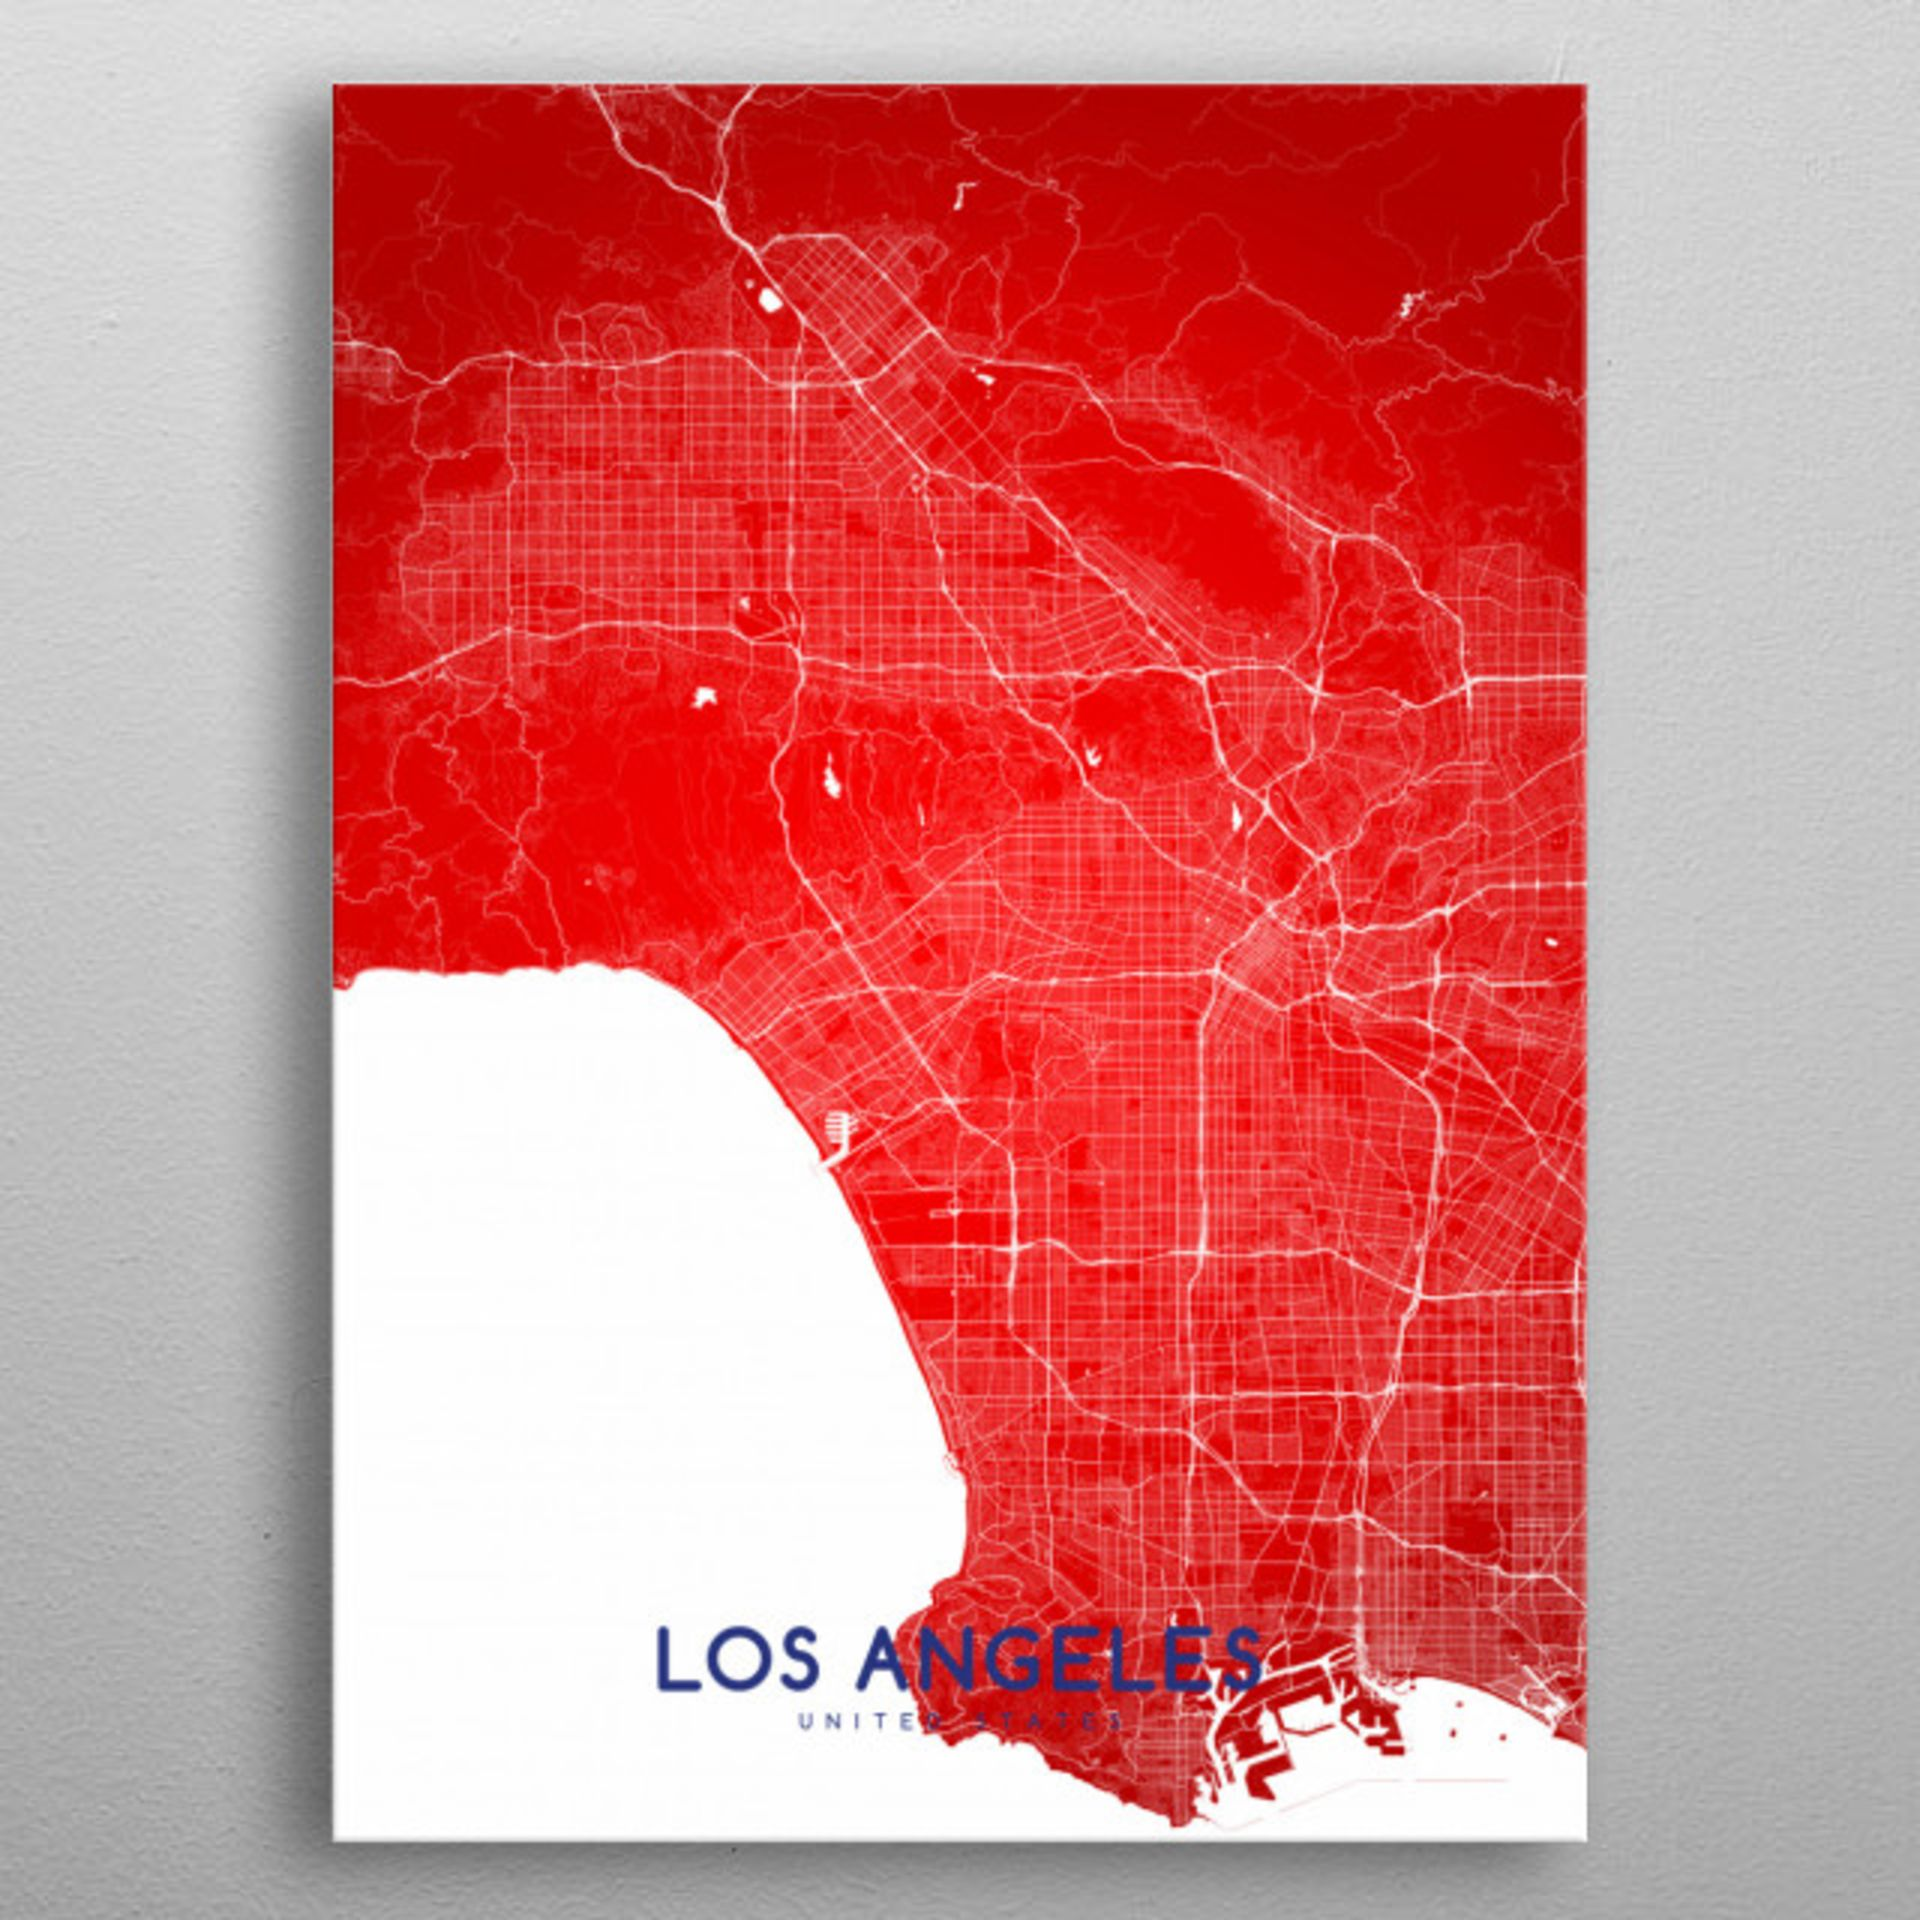 Lot 22 - Los Angeles Metropolitan Topography Map Large Vivid Metal Mounted Map Neatly Organises Urban Sprawls